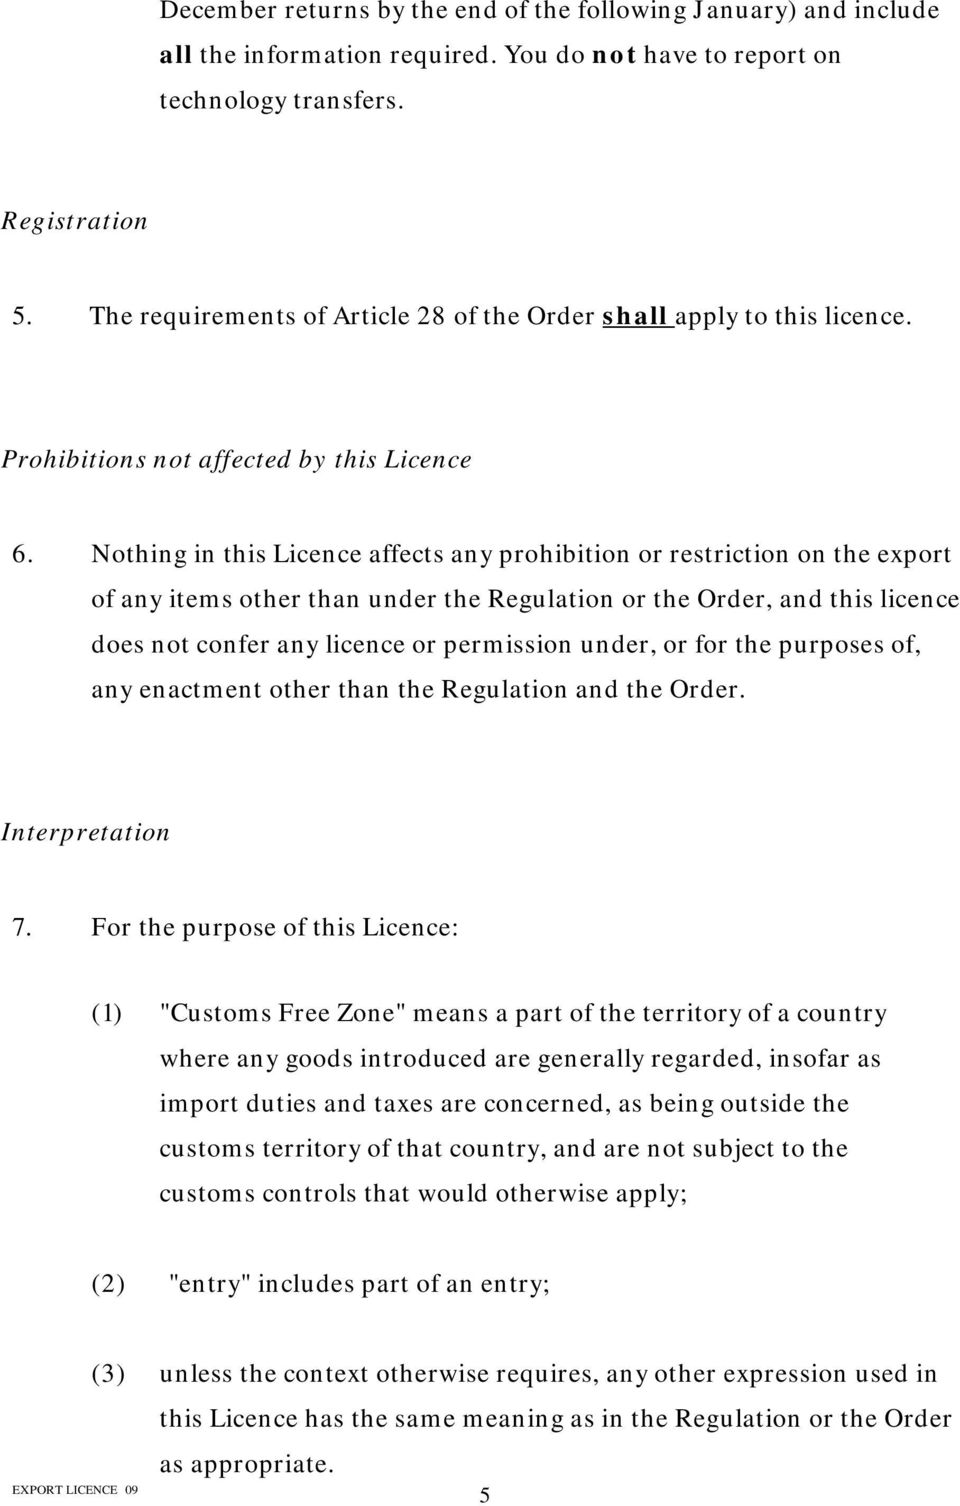 Nothing in this Licence affects any prohibition or restriction on the export of any items other than under the Regulation or the Order, and this licence does not confer any licence or permission